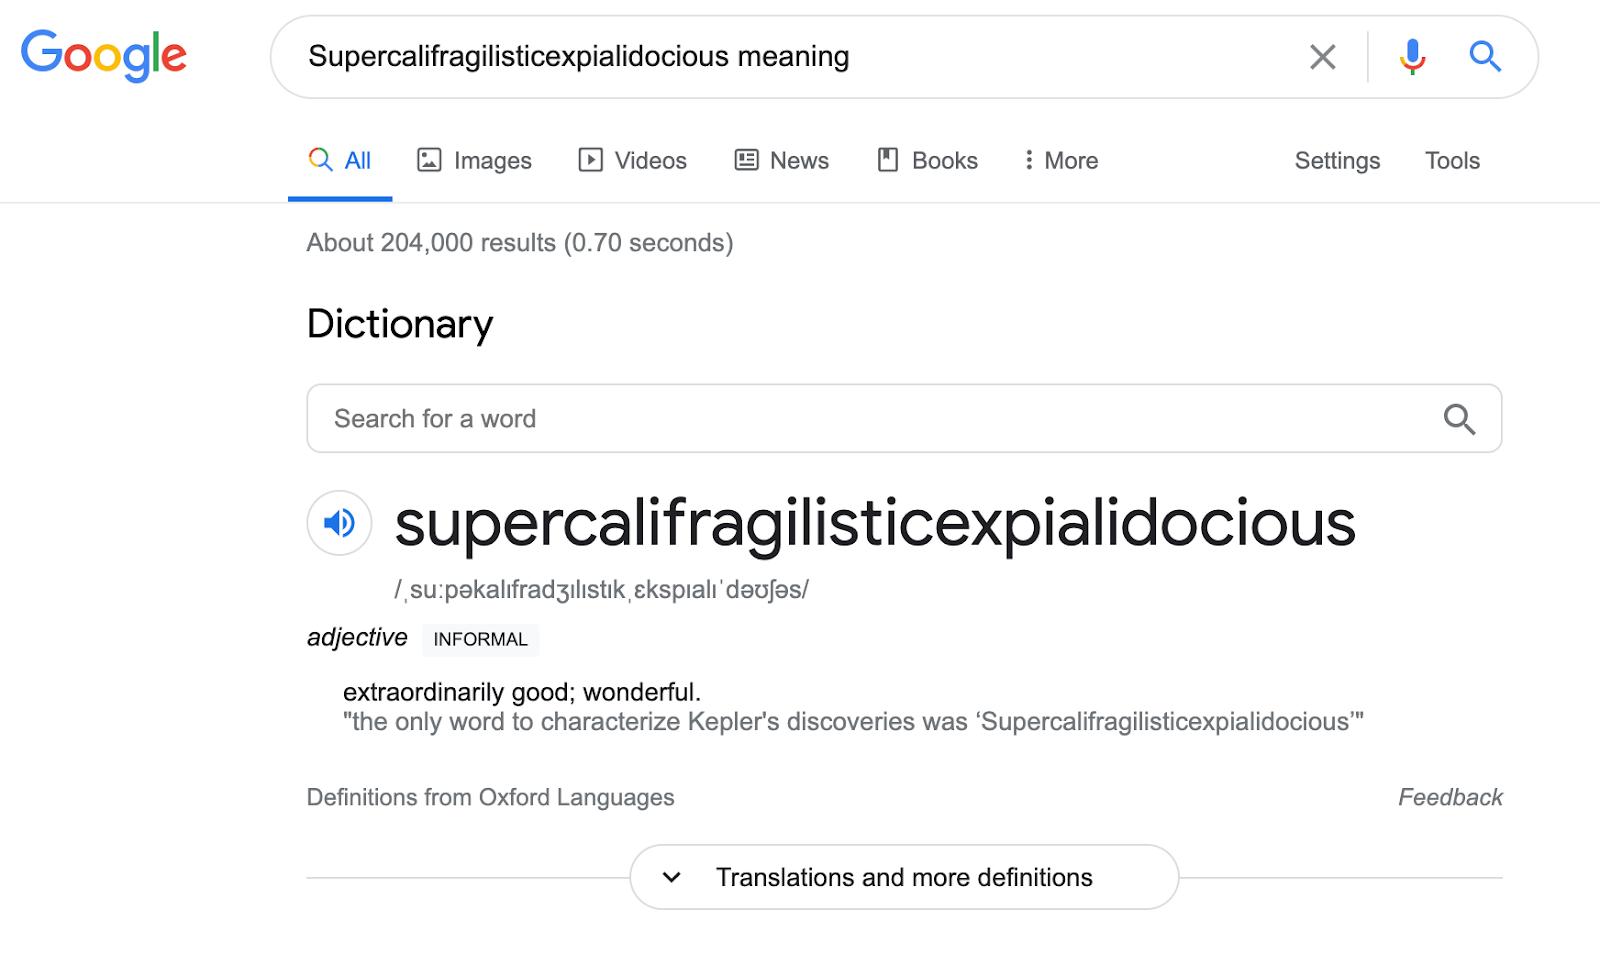 featured snippet definition